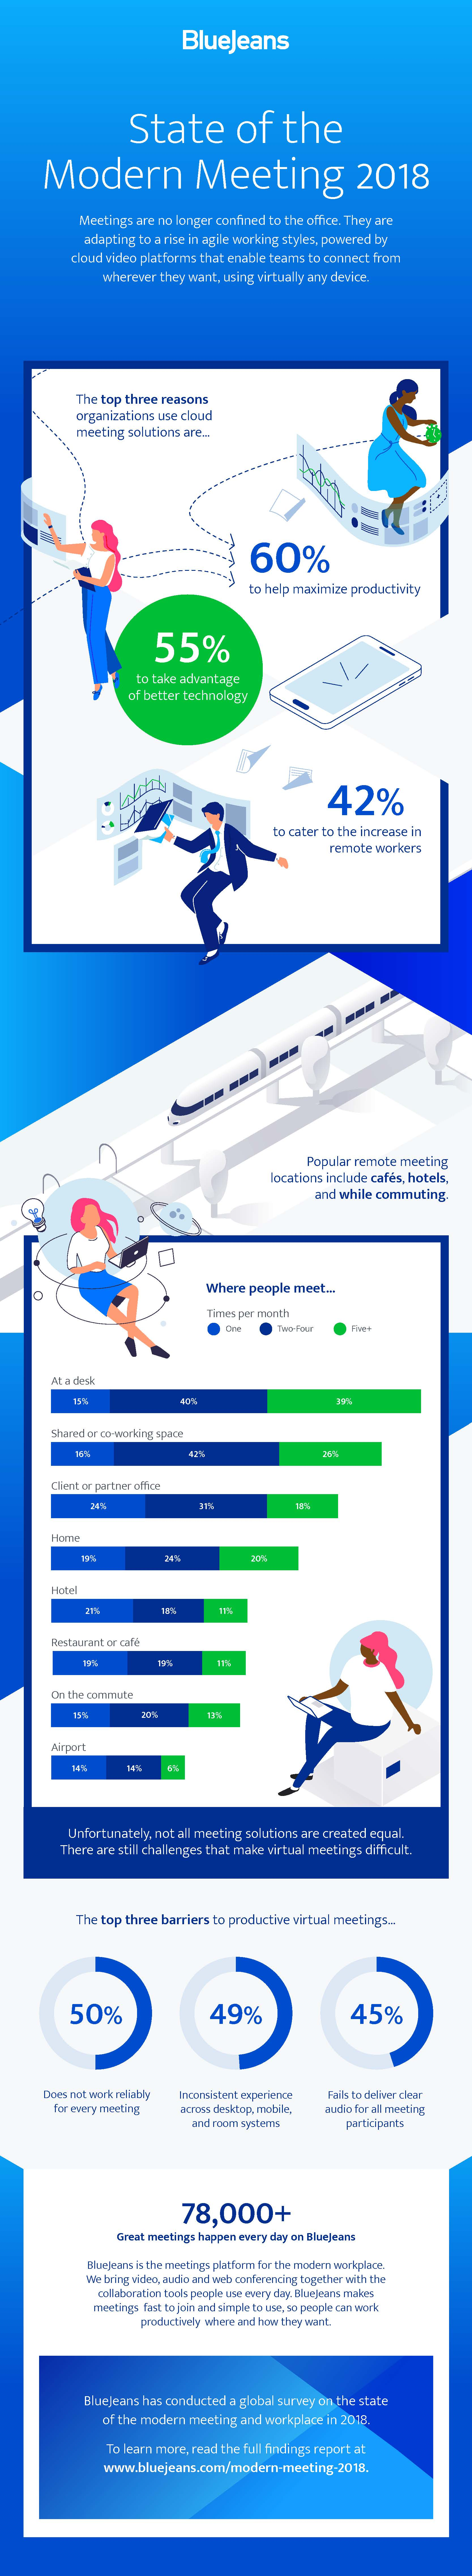 State of the Modern Meeting 2018 Infographic